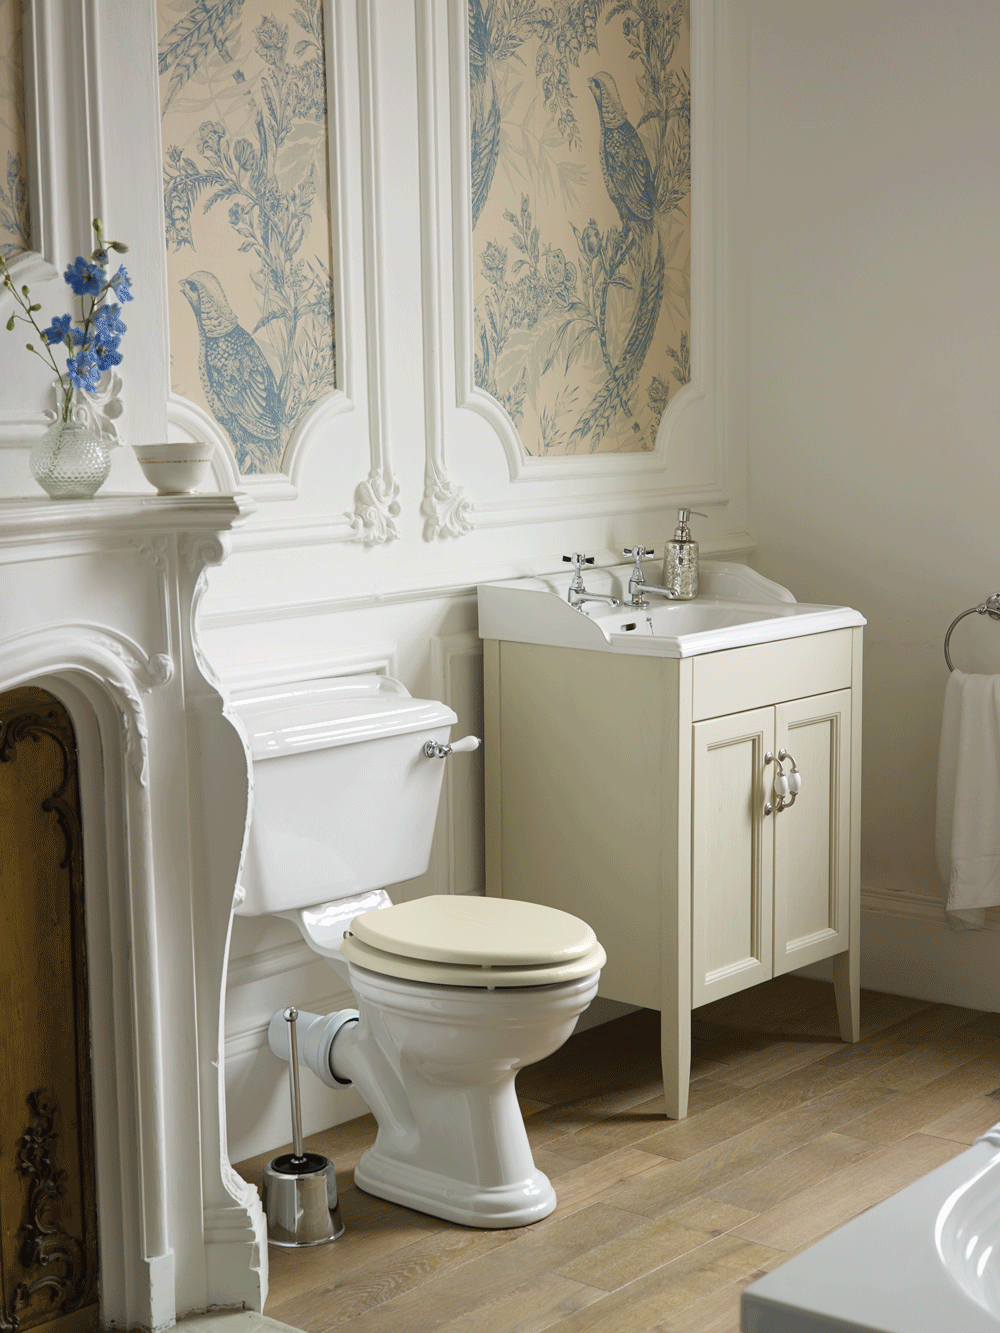 Heritage Bathroom Furniture Dorchester Vanity In Oyster From Tubs Tiles